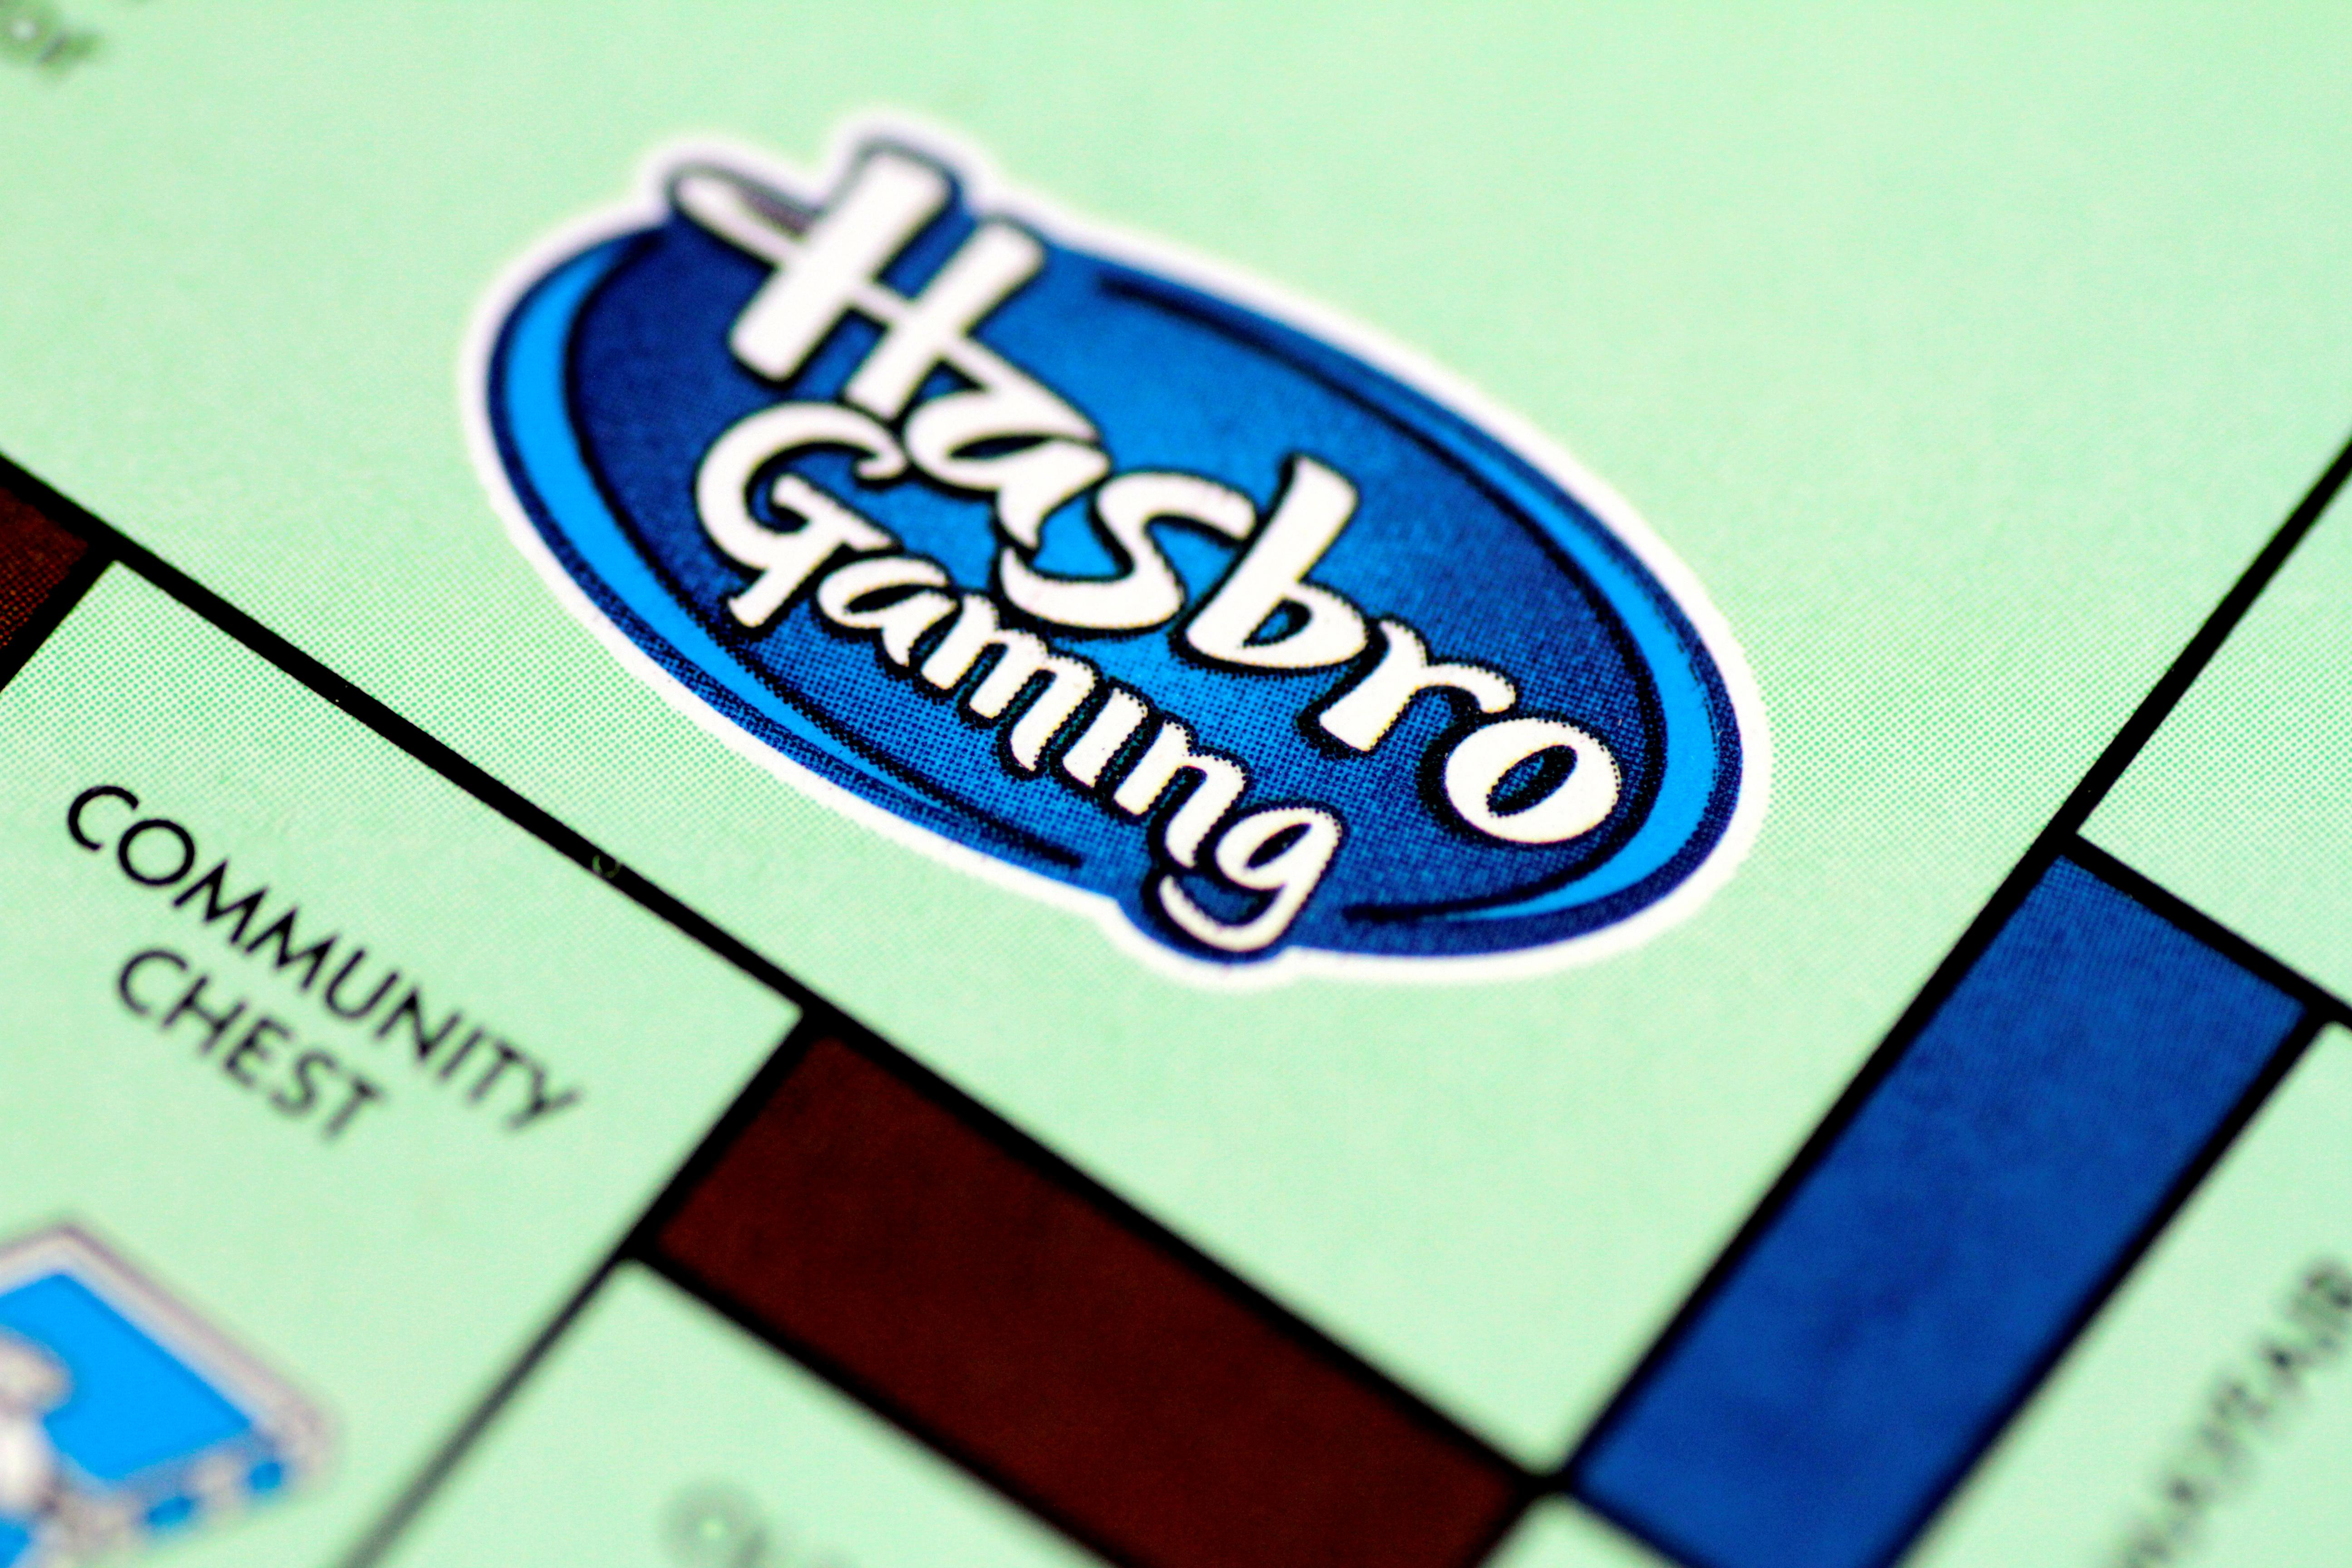 Hasbro shares plunge as toymaker battles tariff costs